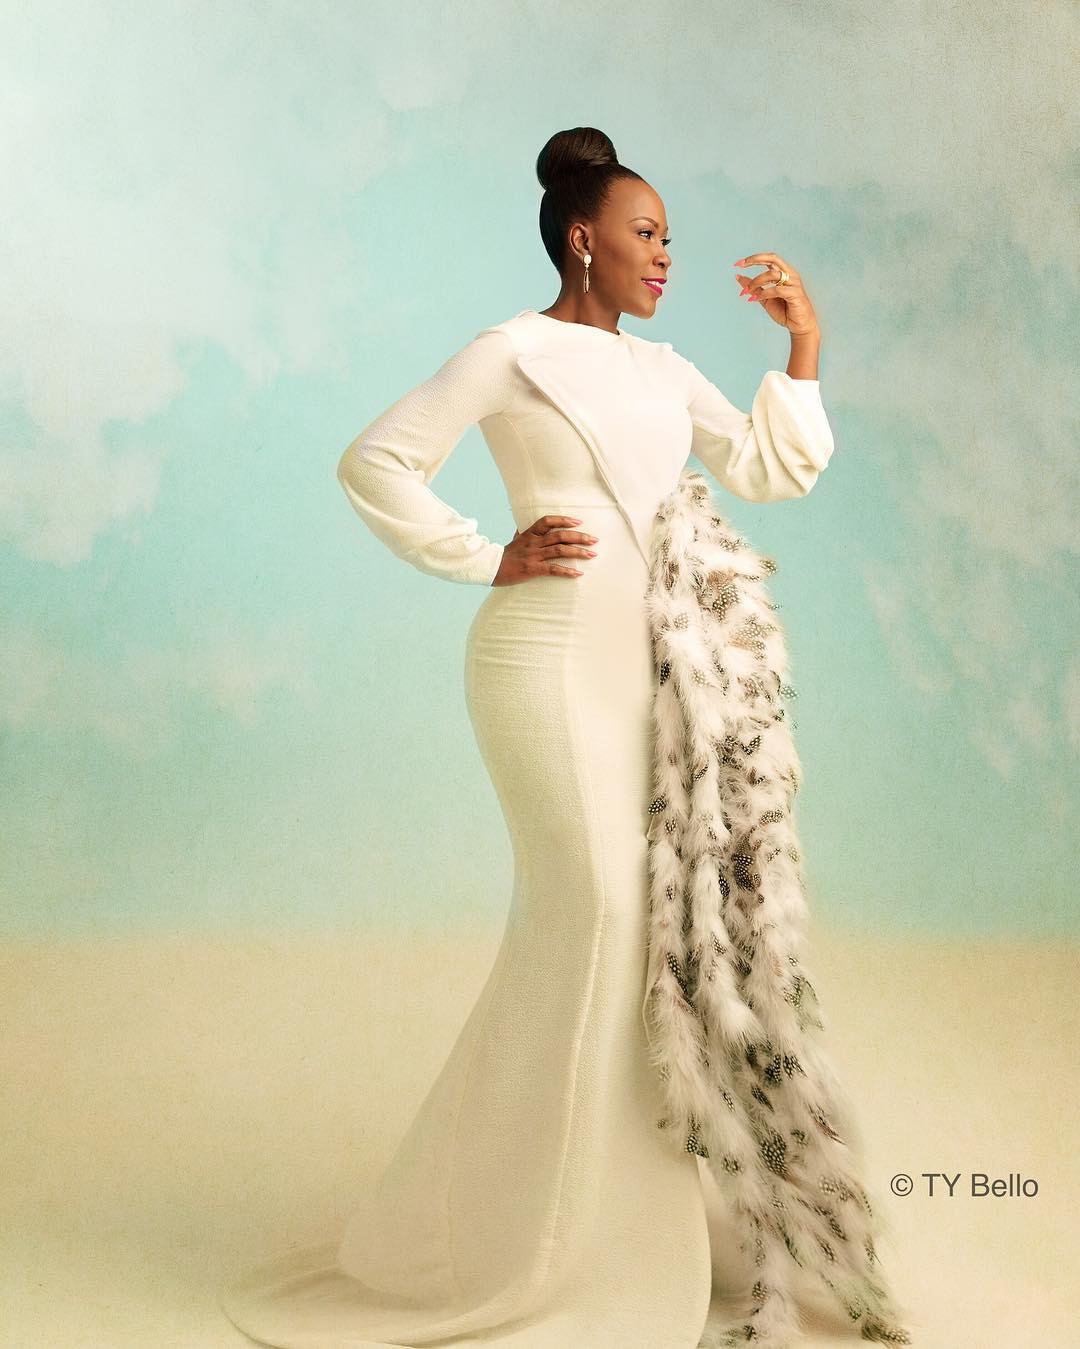 ty bello tara2 - Fabulous 40th Birthday Portraits By TY Bello